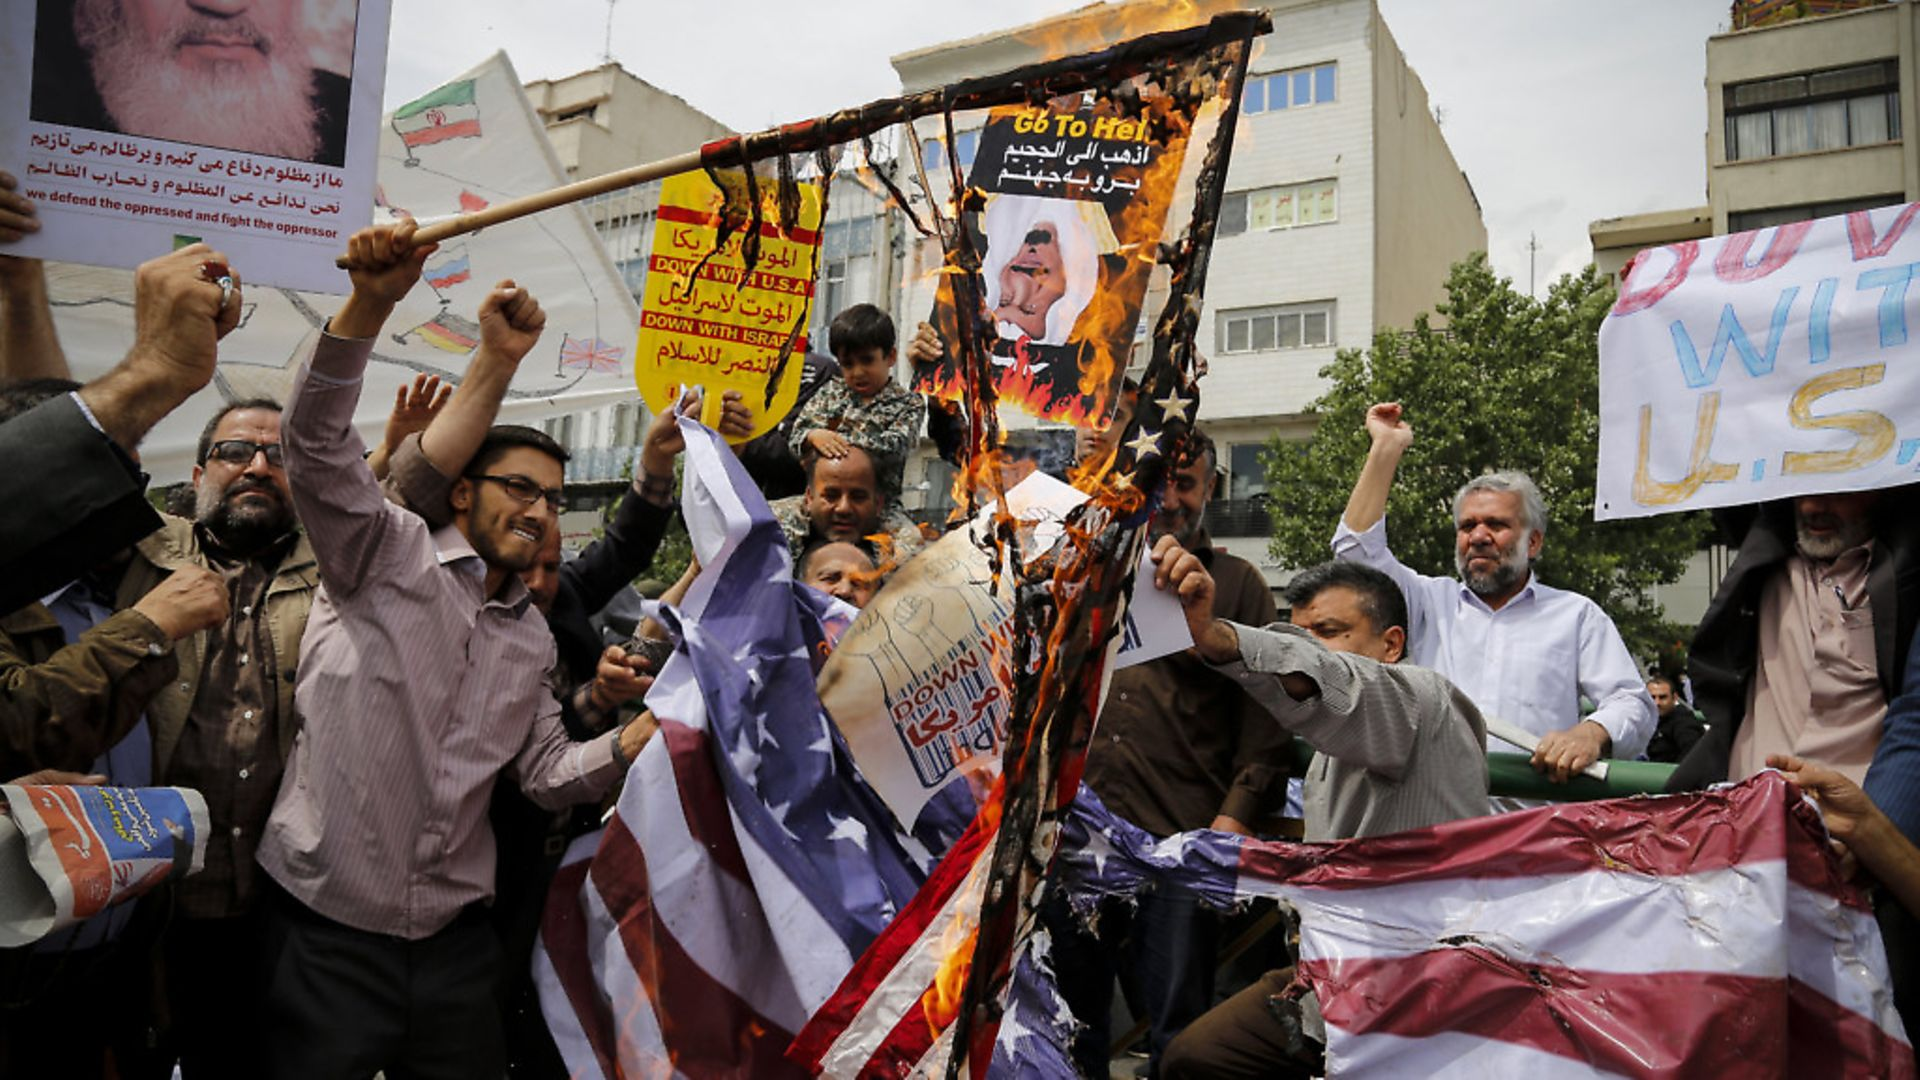 Iranian demonstrators burn American flags during a protest in Tehran, Iran on May 11, 2018, following the decision by U.S. President Donald Trump to pull out of the nuclear deal and renew sanctions on the country. - Credit: PA Images